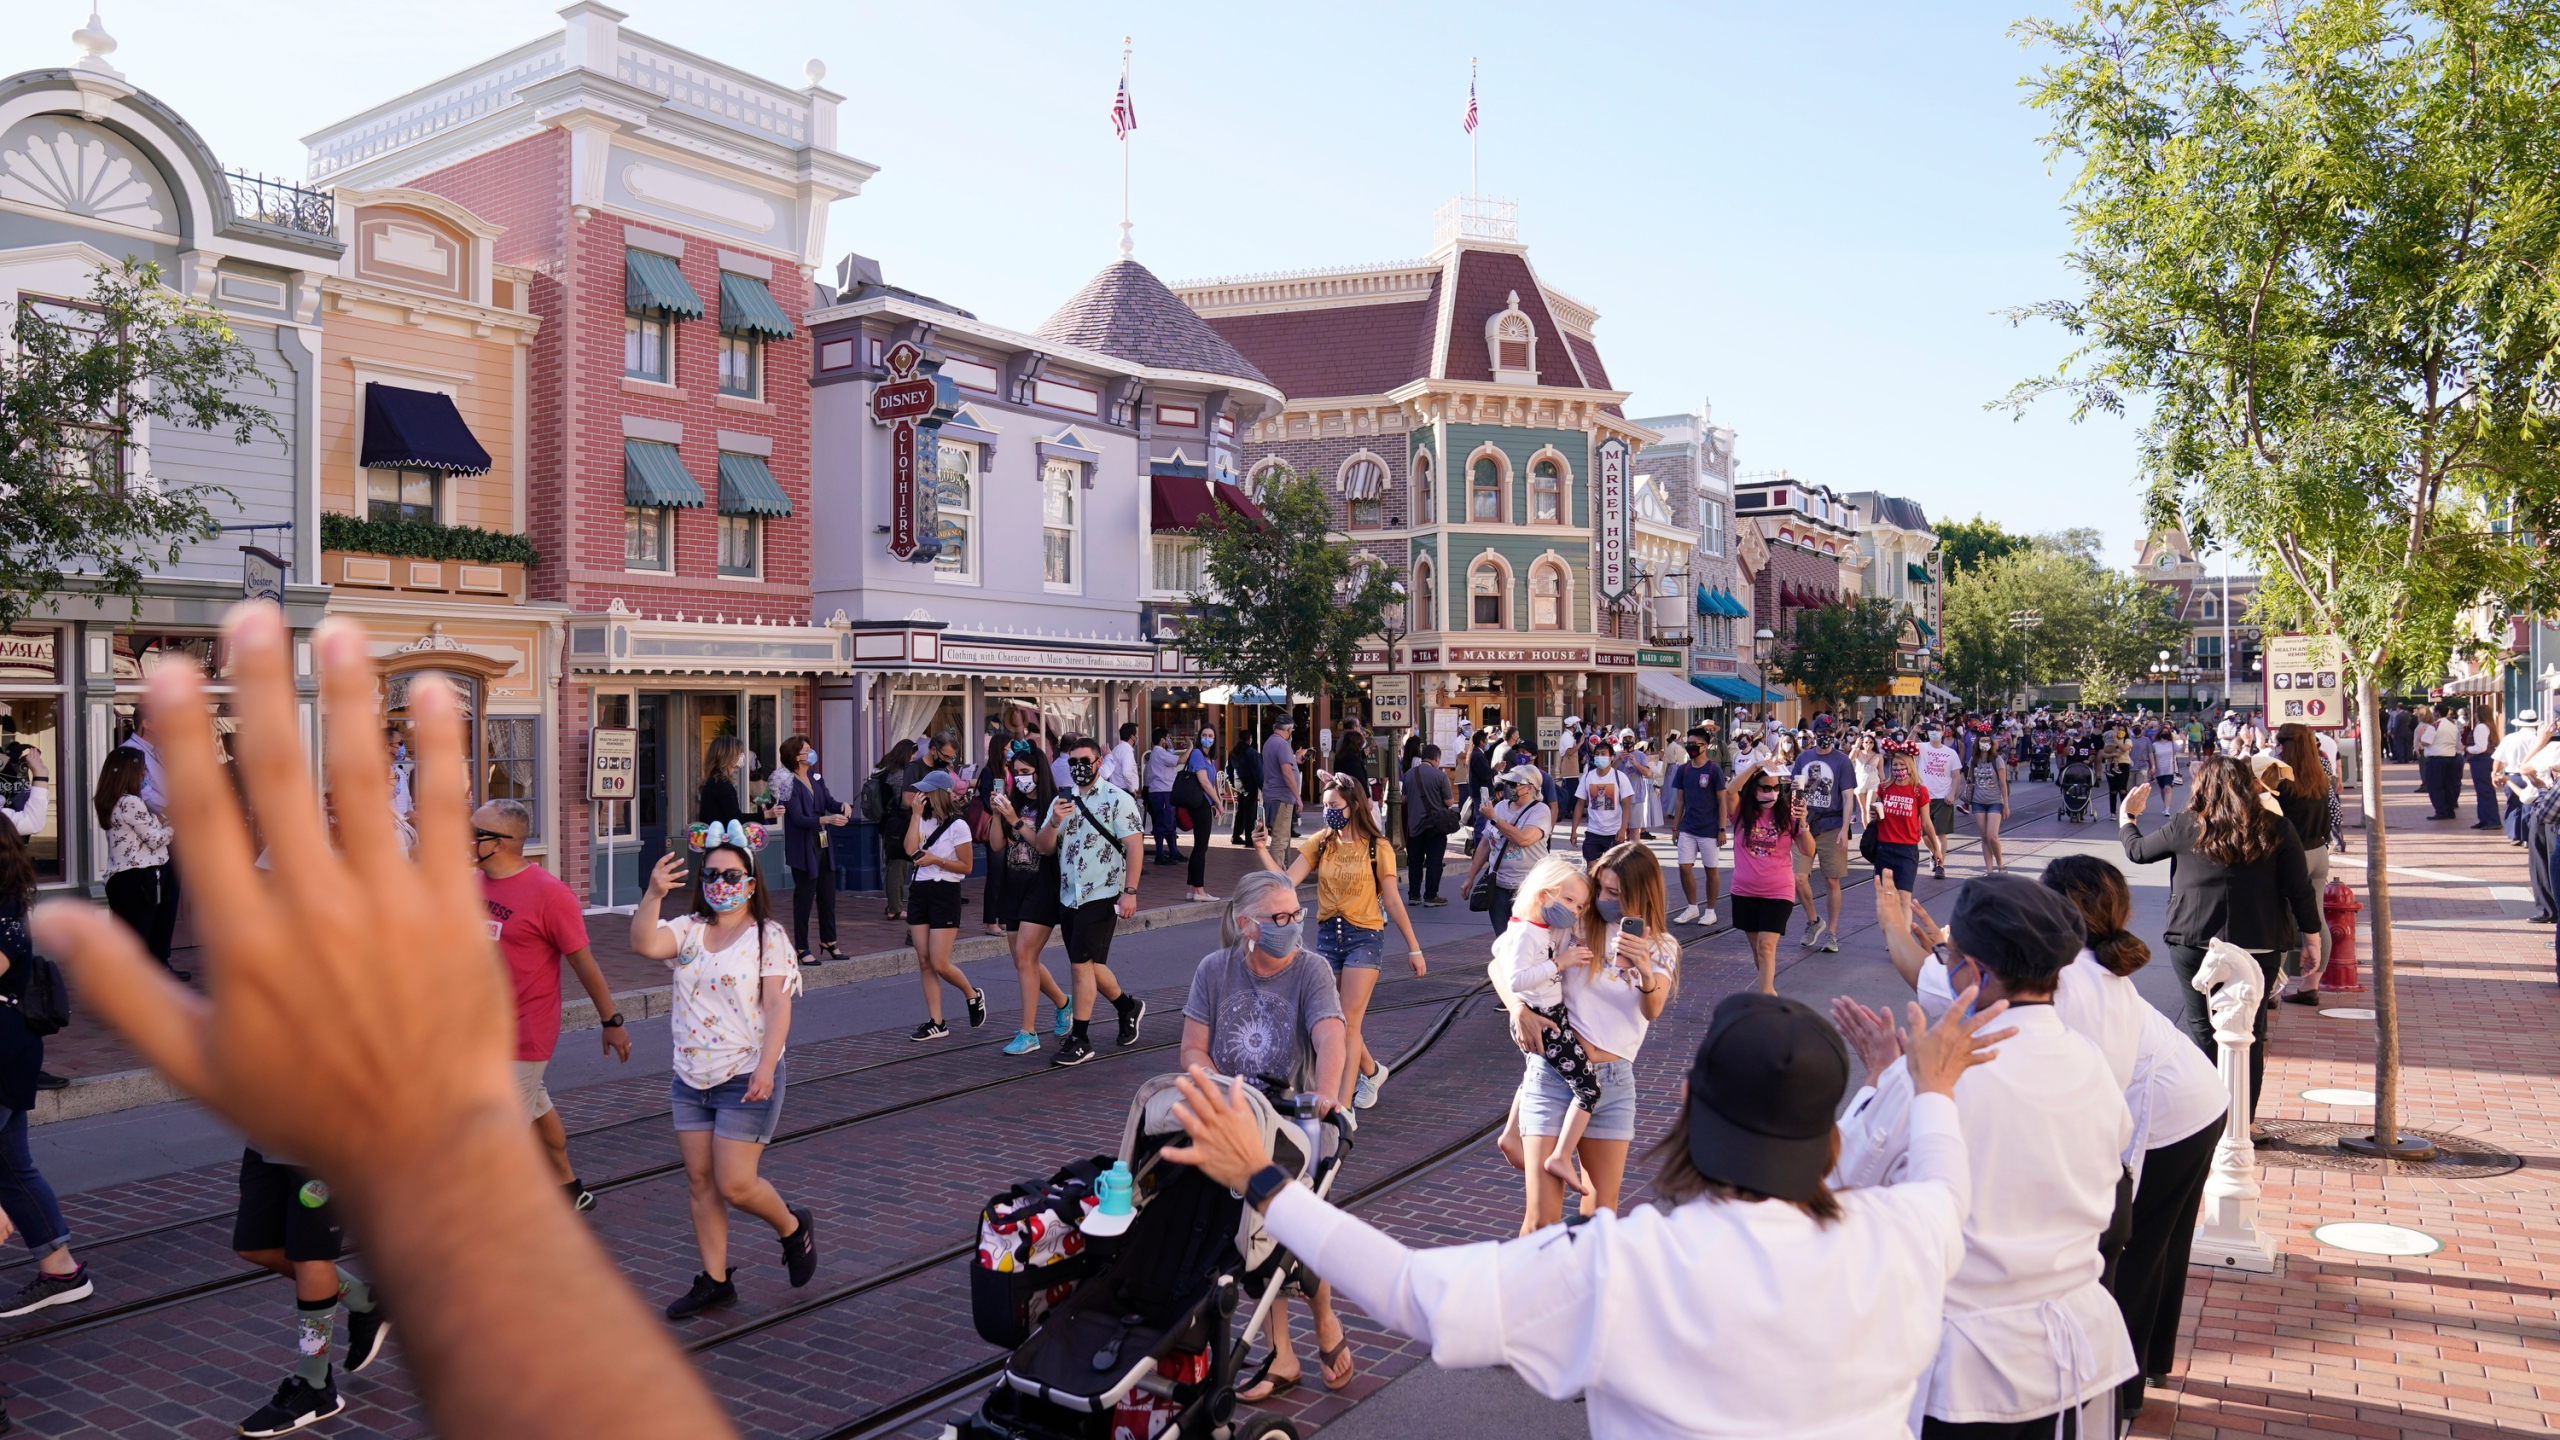 In this April 30, 2021, file photo, guests walk down Main Street USA at Disneyland in Anaheim. Los Angeles and San Francisco are reopening more businesses under California's least restrictive coronavirus safety rules, even though they have more infections than many other big counties, state data shows. (AP Photo/Jae Hong, File)